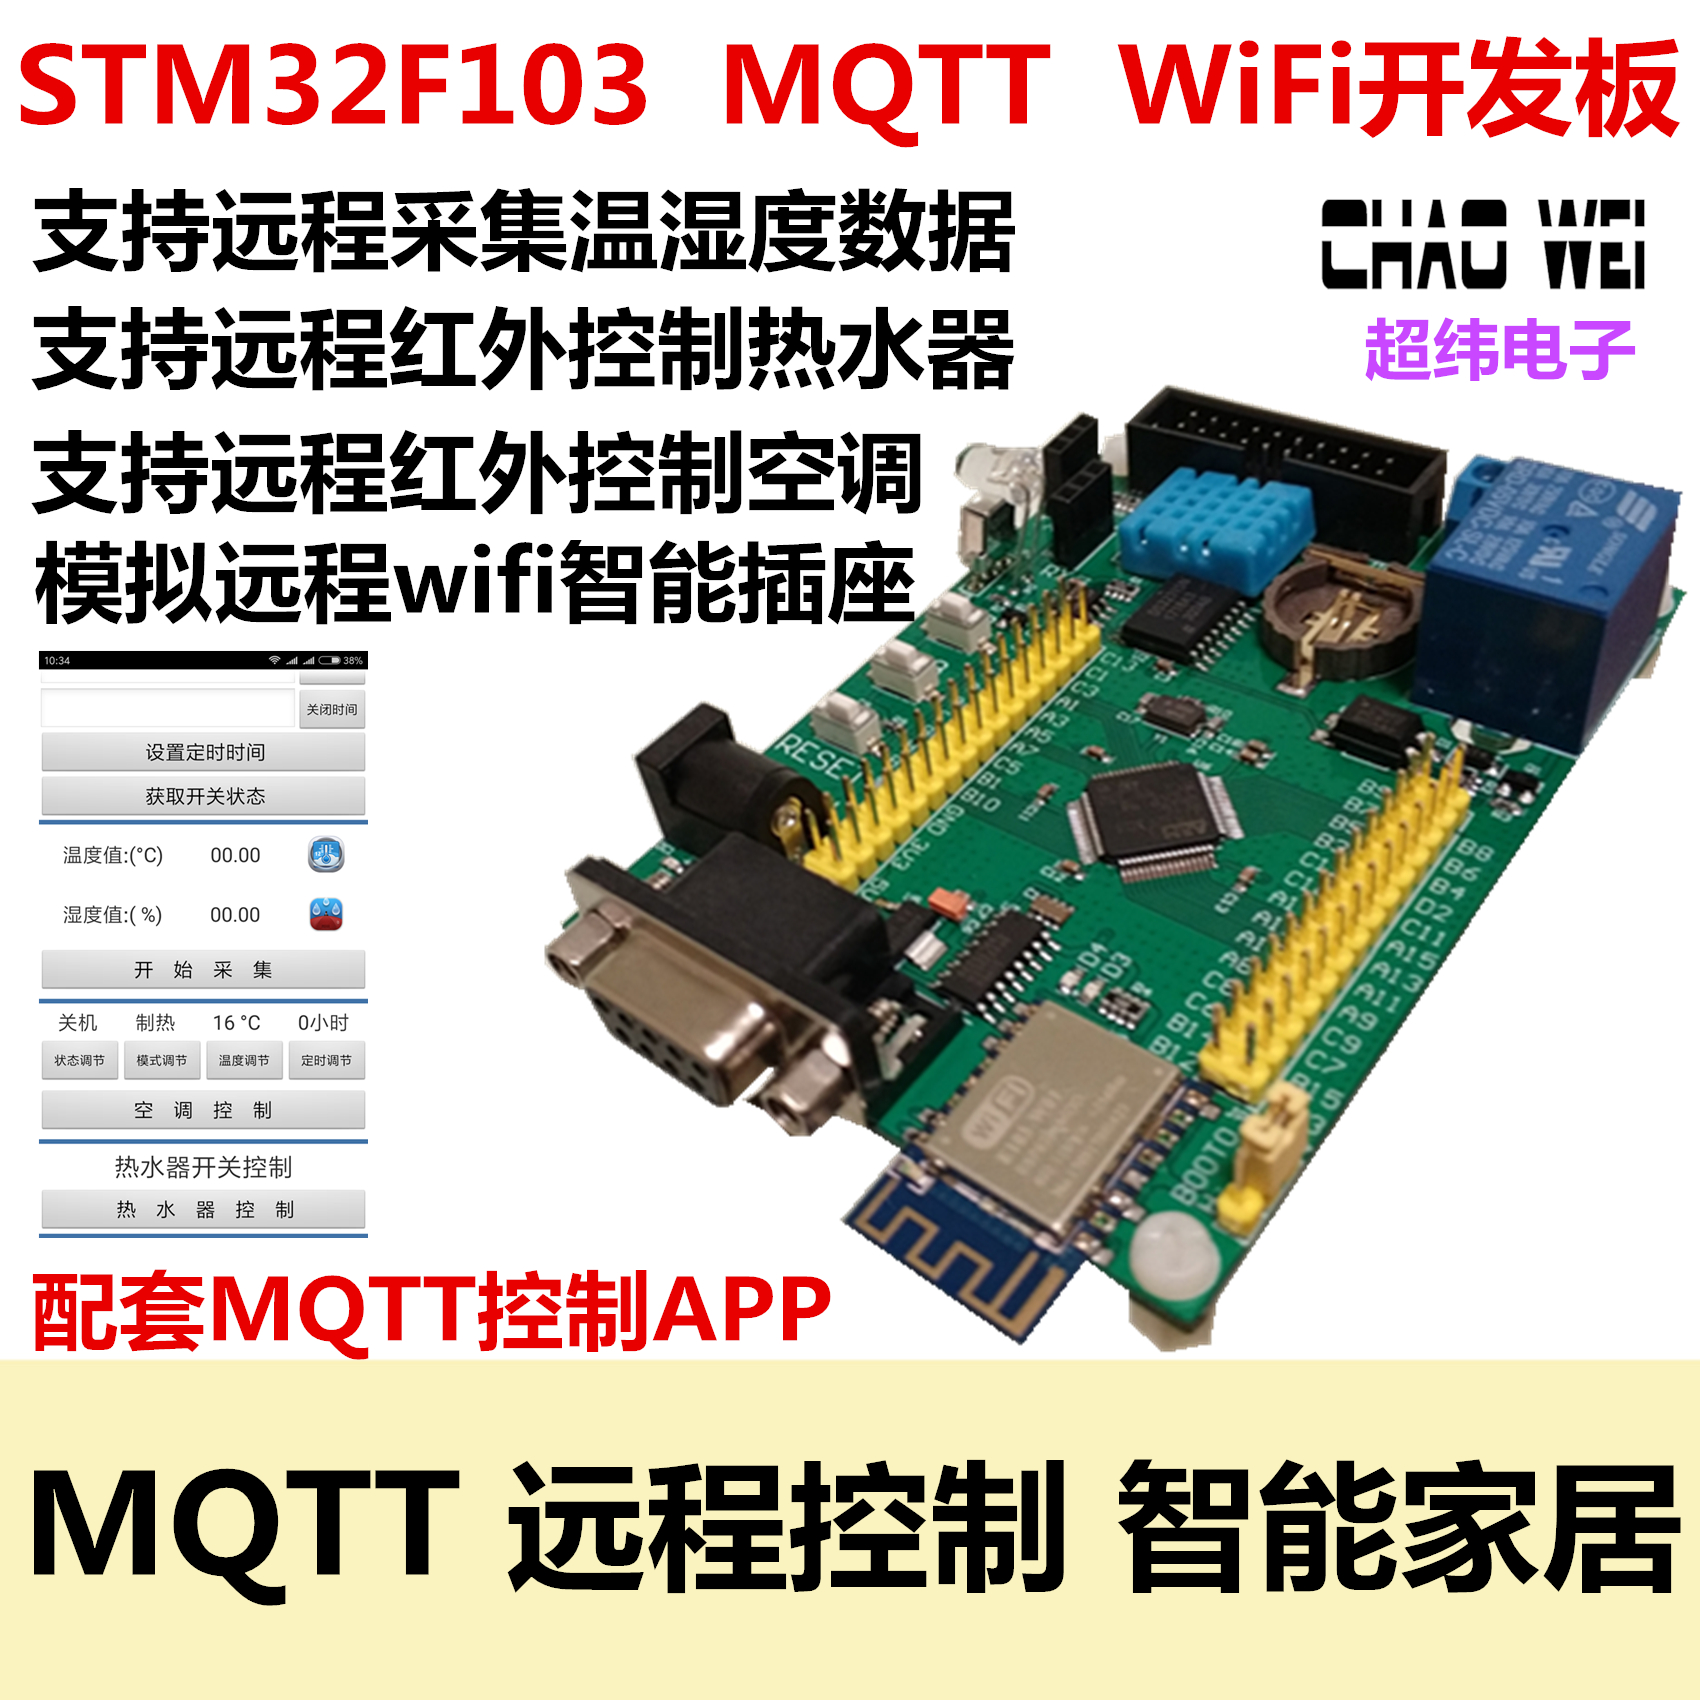 Internet of things MQTT remote control air conditioner water heater STM32F103 WiFi esp8266 development board planning for development of water resources of maner river